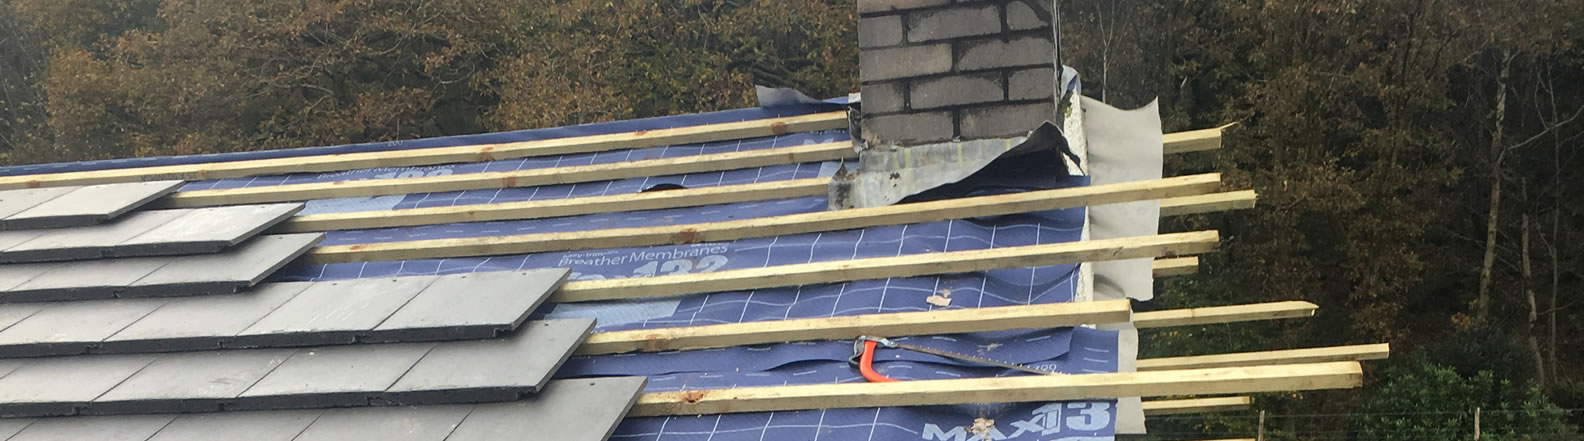 K2 Roofing Limited Roofers In Cumbria From A Single